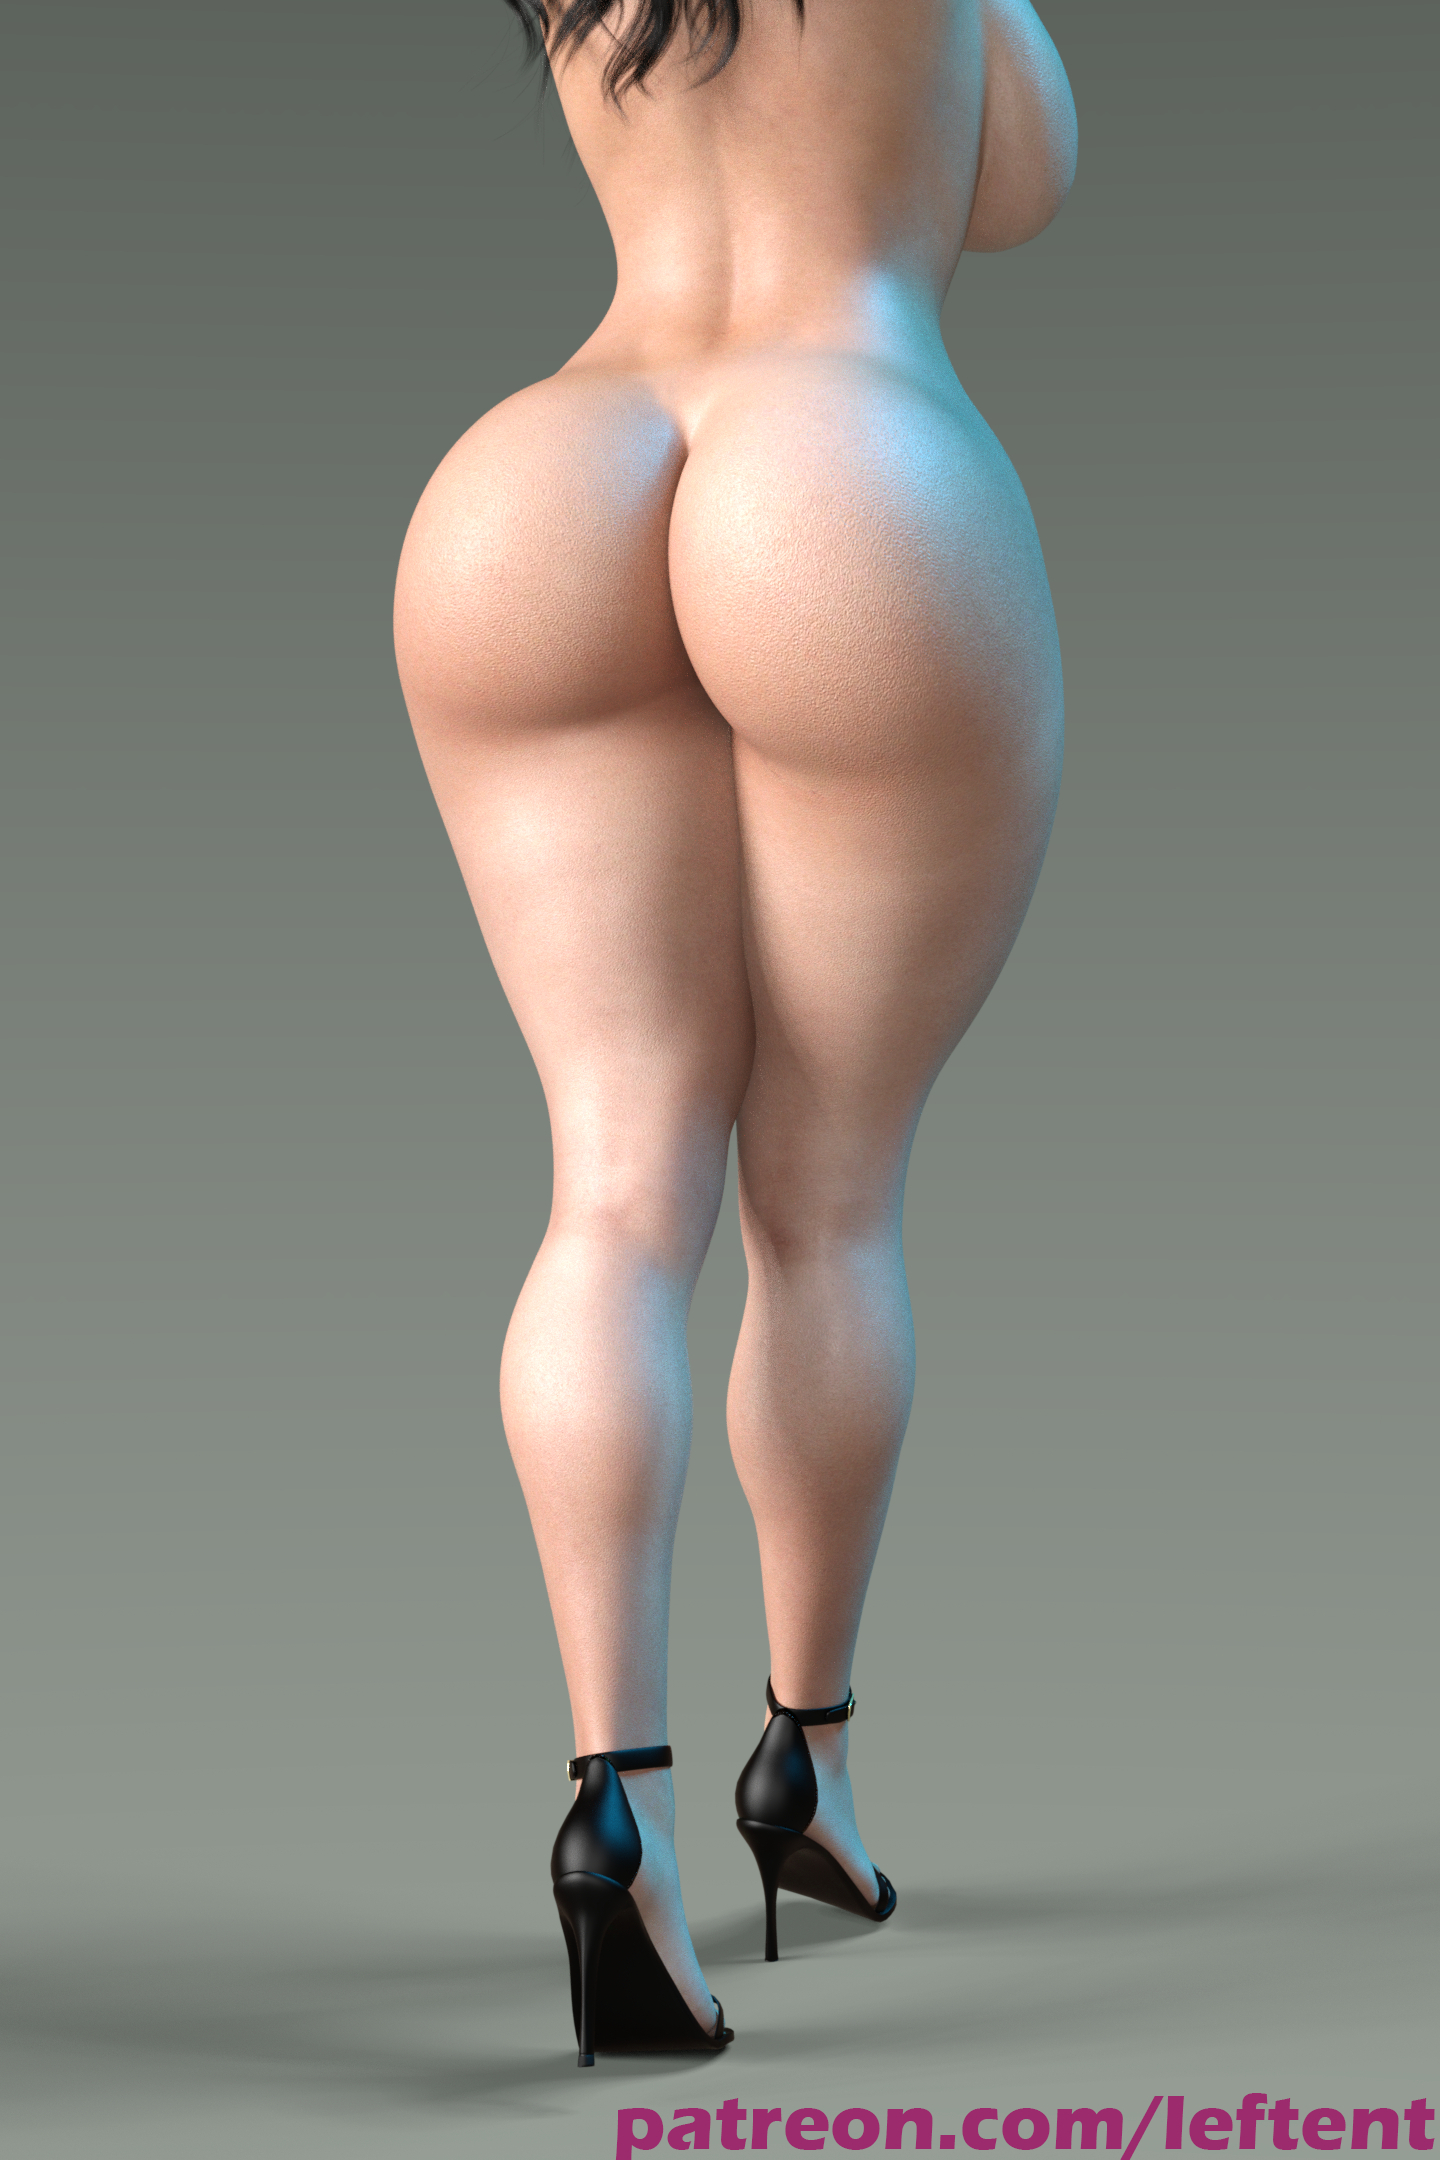 Scarlett IS SUCH A THICK GIRL !